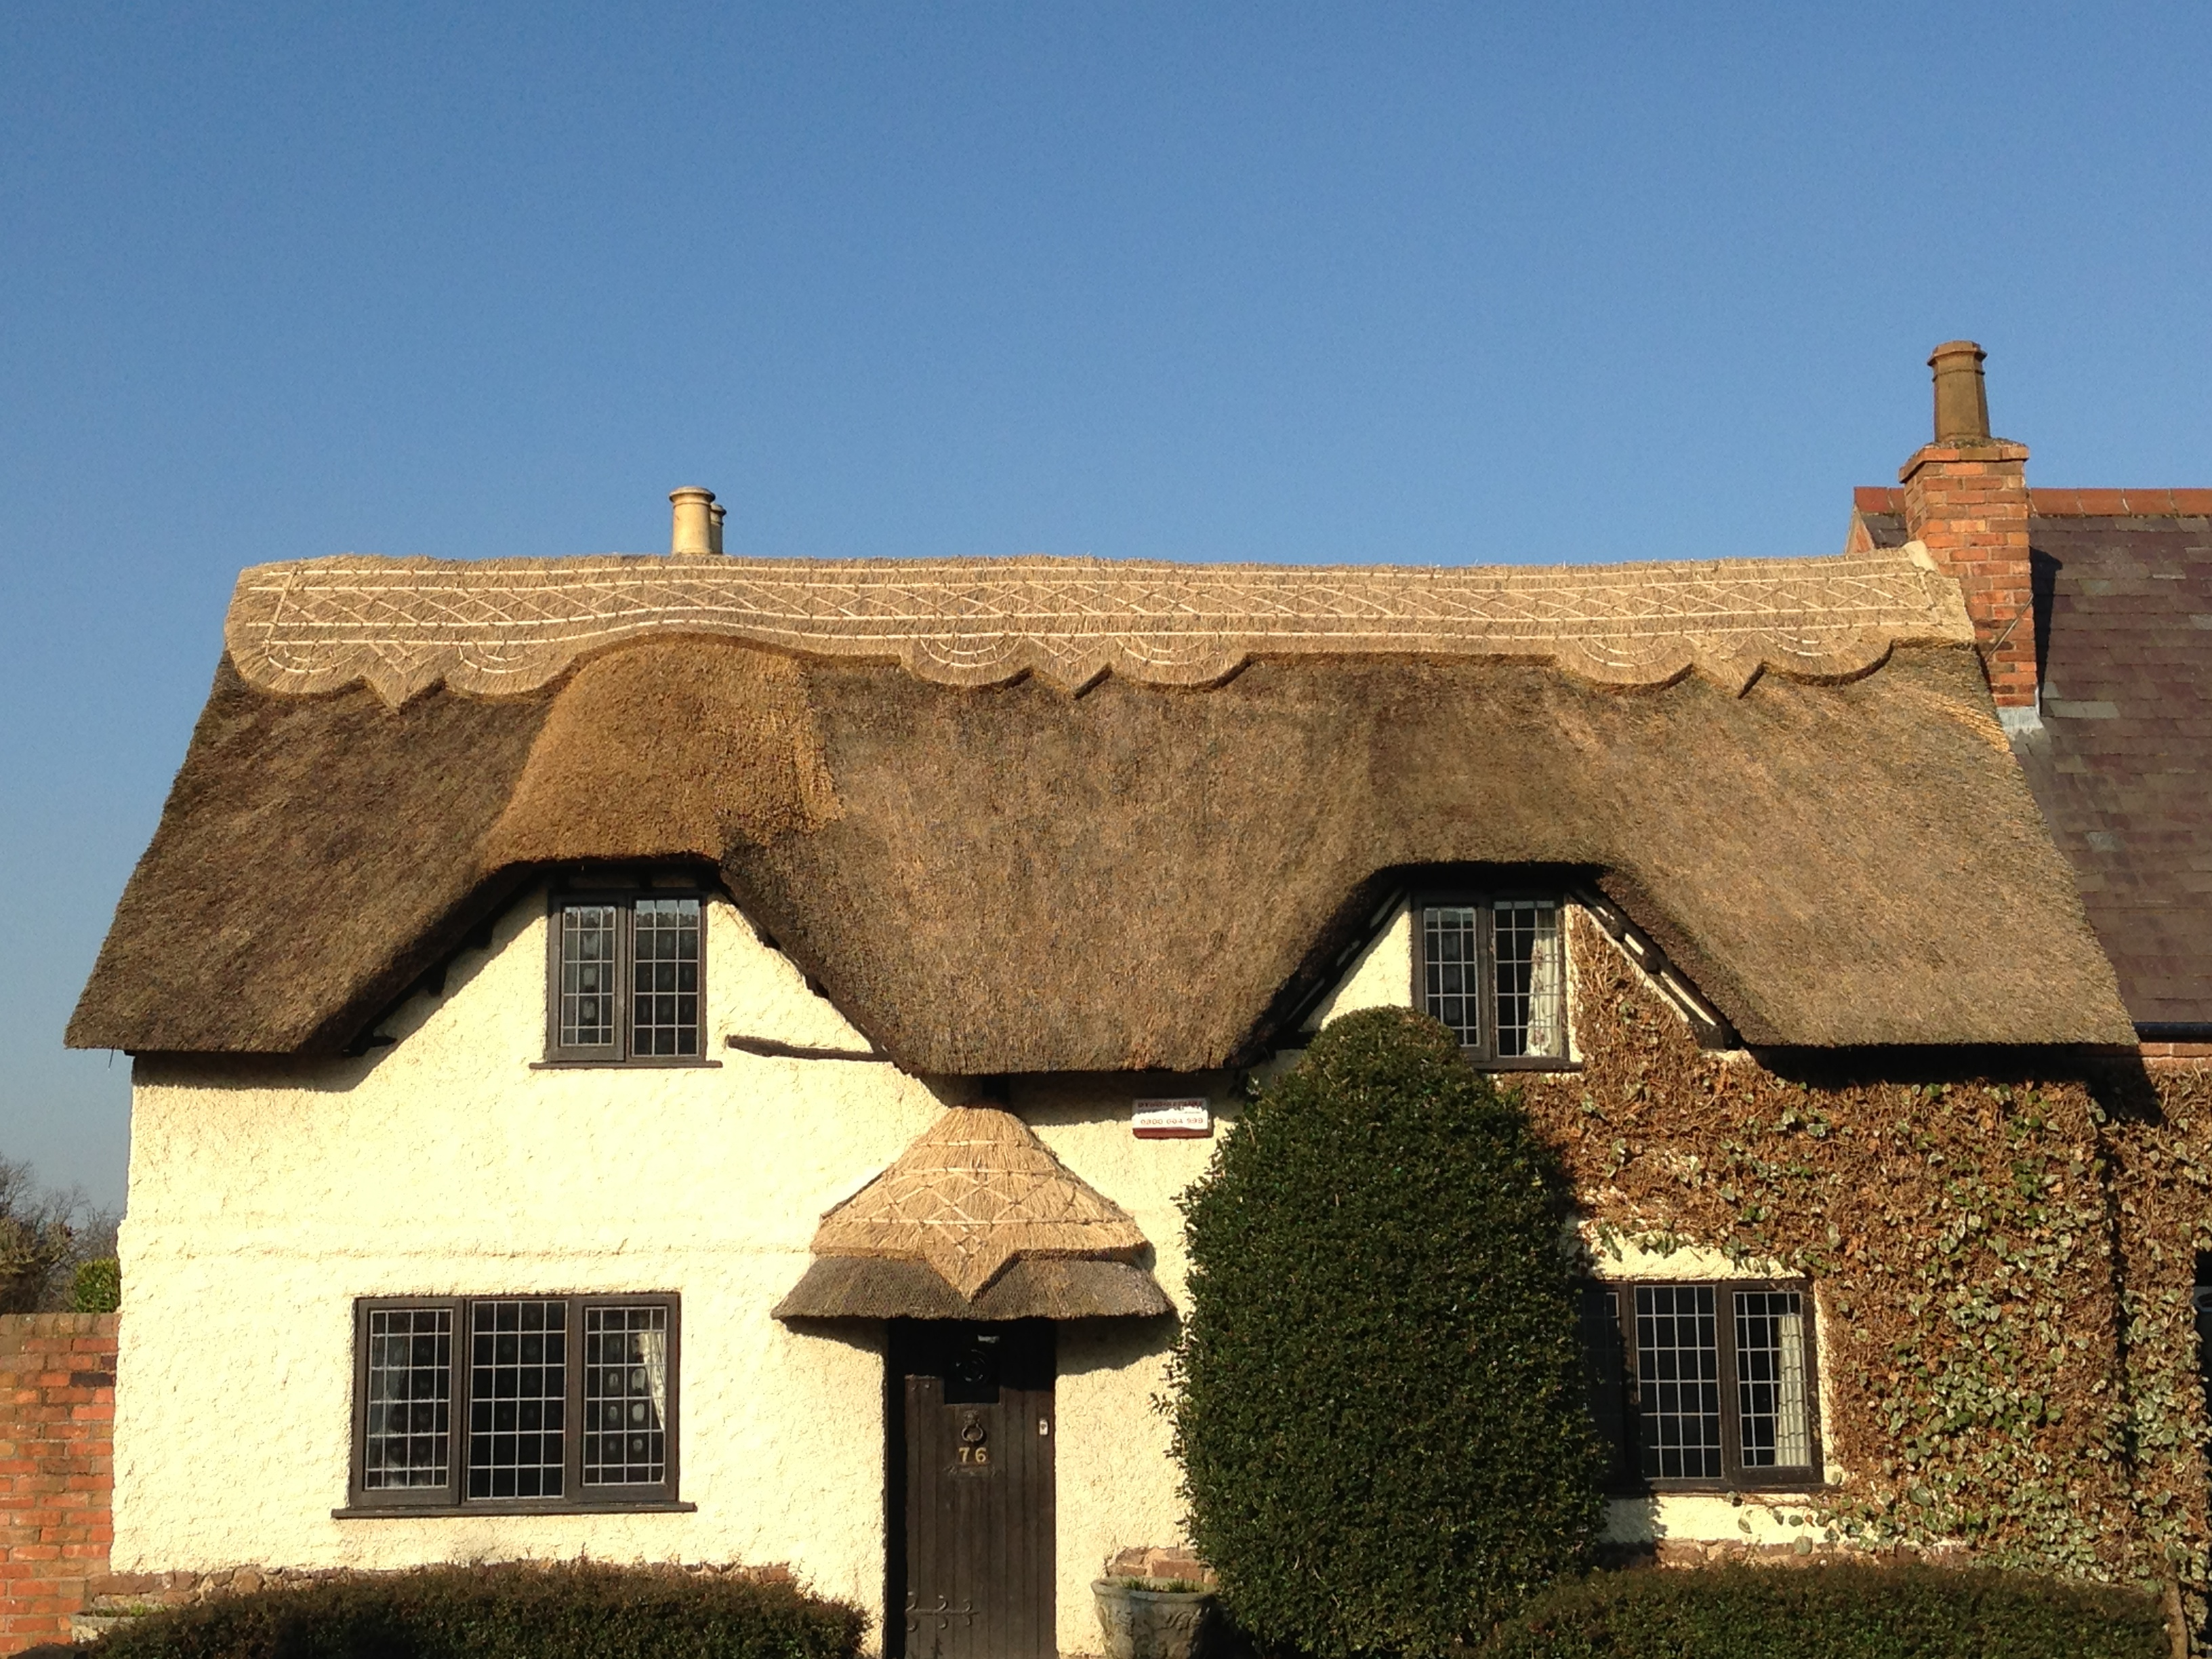 Thatched Roof Repairs Leicester Emergency Thatch Roof